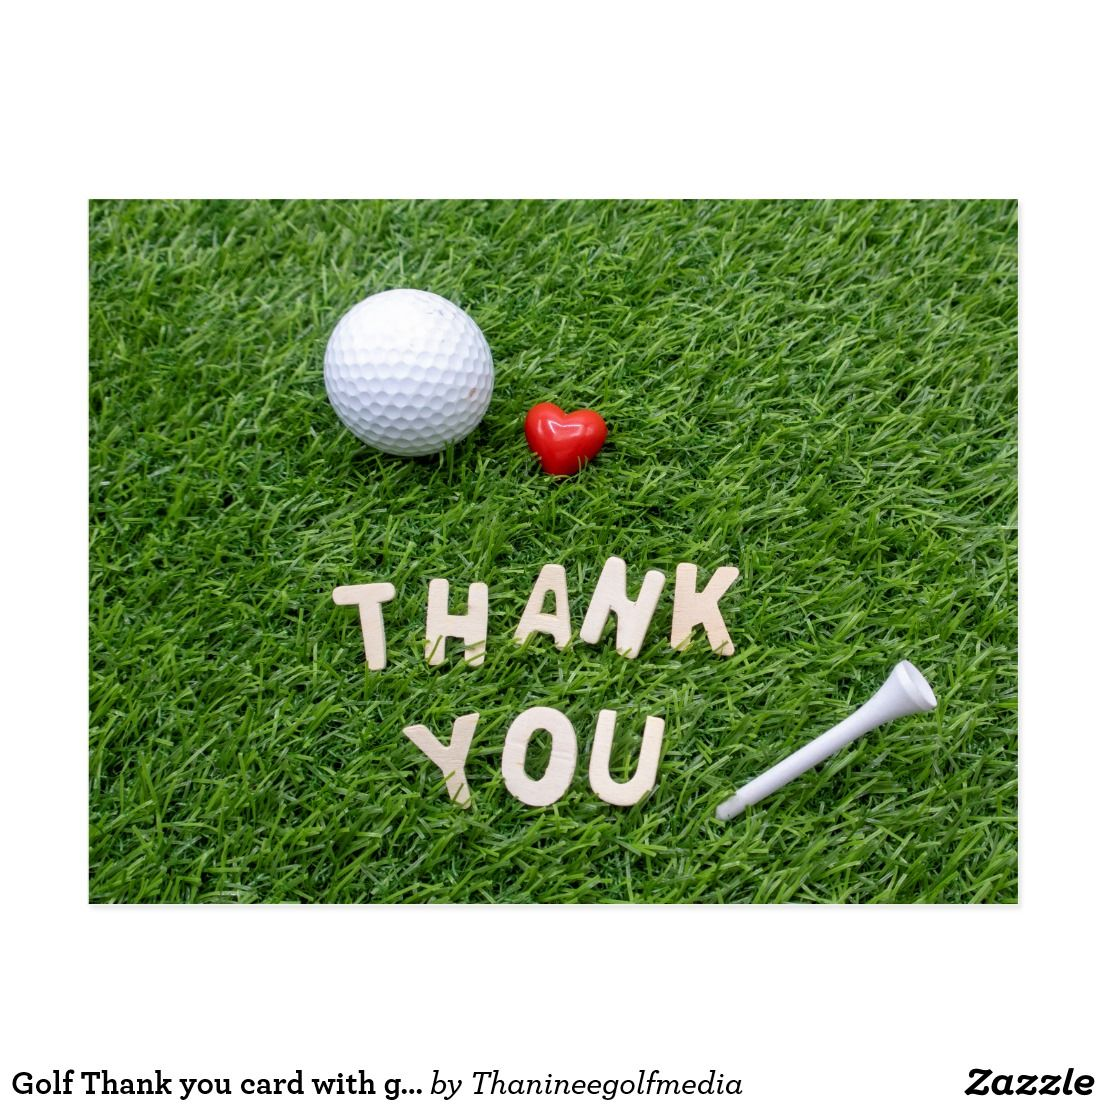 Golf Thank You Card With Golf Ball And Tee Zazzle Com Golf Birthday Cards Golf Cards Thank You Cards